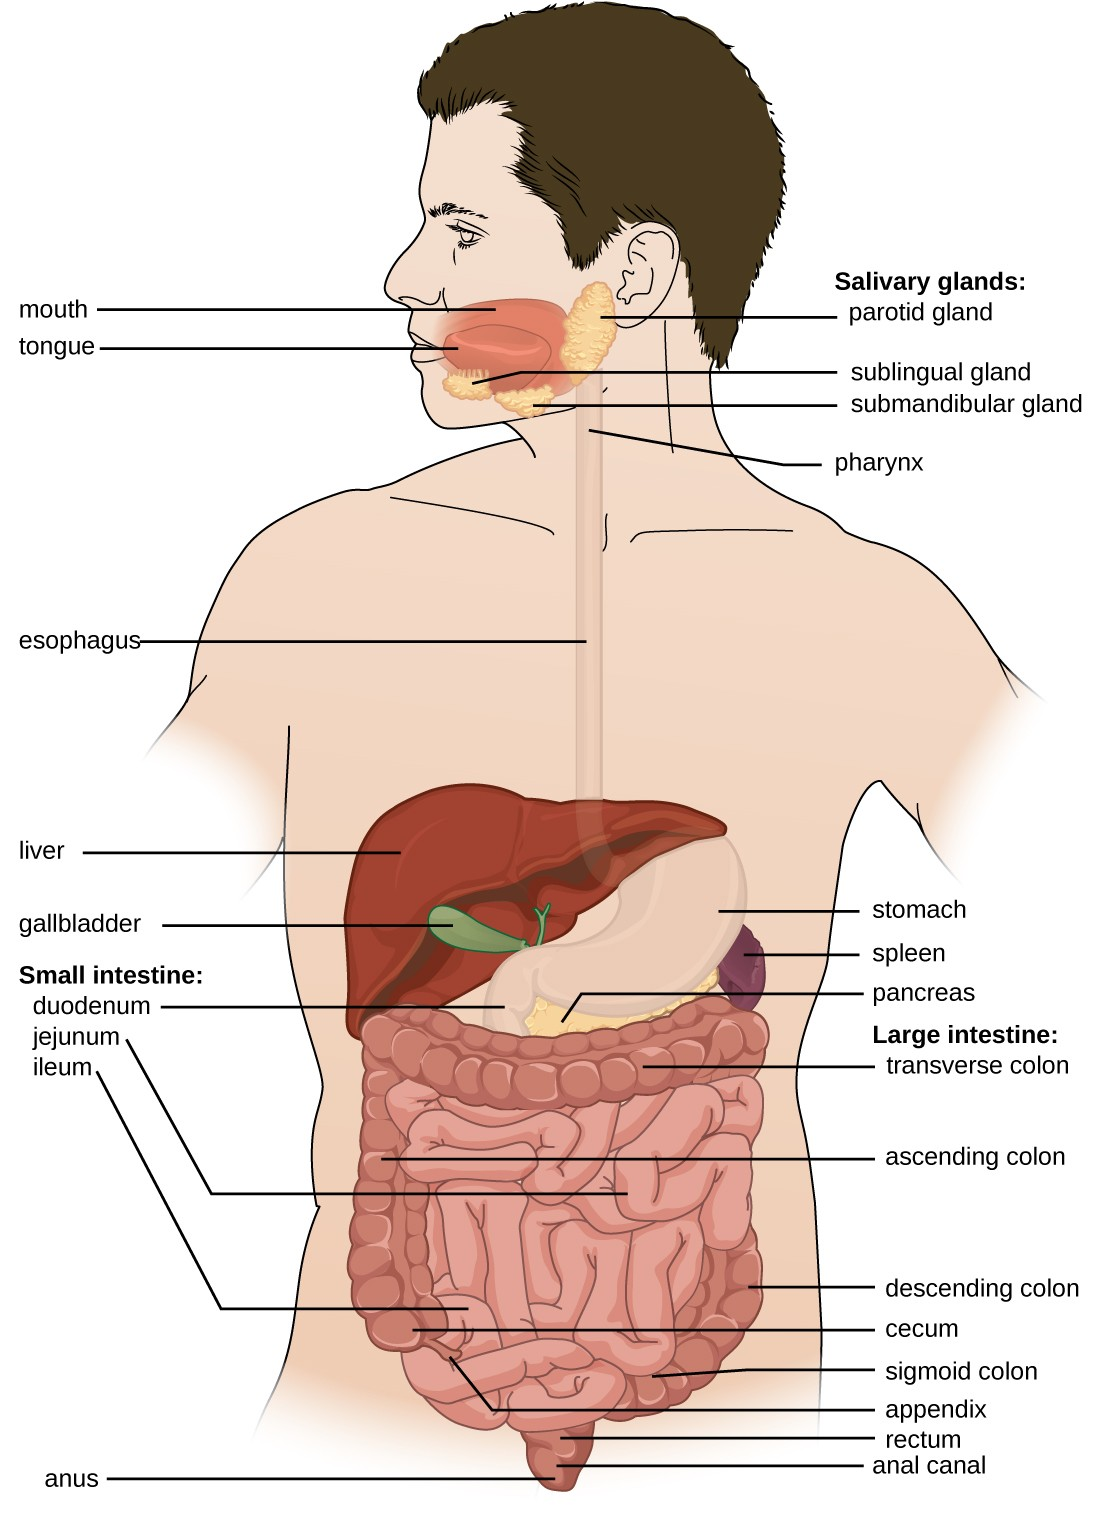 Anatomy and normal microbiota of the digestive system microbiology diagram of the digestive system the system begins with the mouth and tongue there ccuart Images